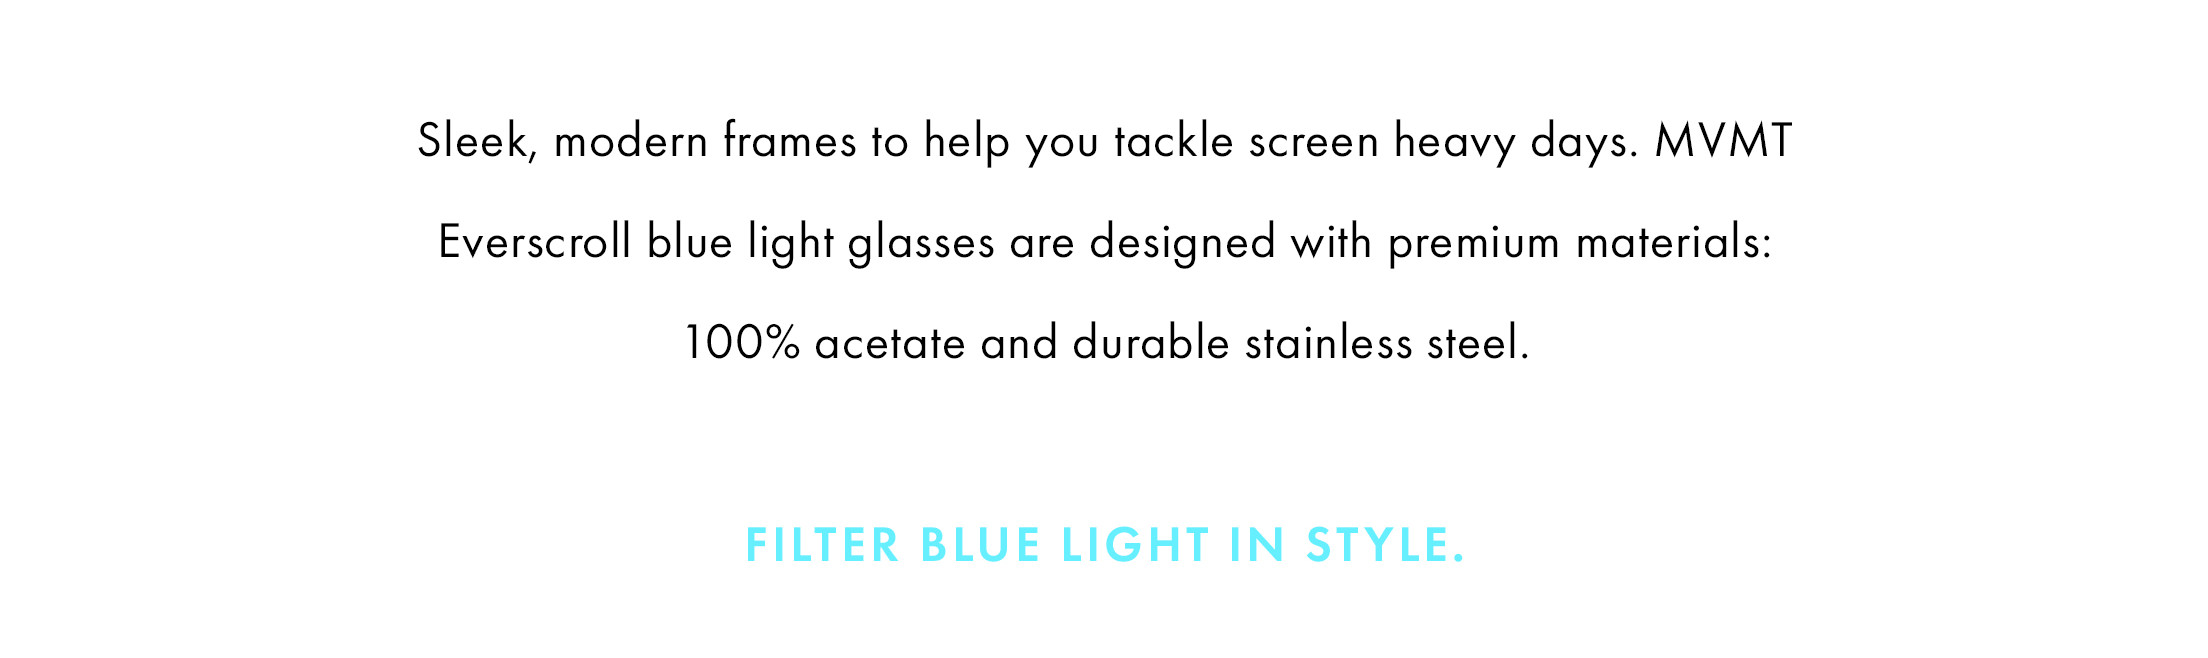 Everscrolls do the work for you and filter out a third of the most intense blue light rays to help you tackle your screen heavy days.   Designed with premium acetates, sleek steels and modern silhouettes, our blue light glasses are easy on the eyes in every way.